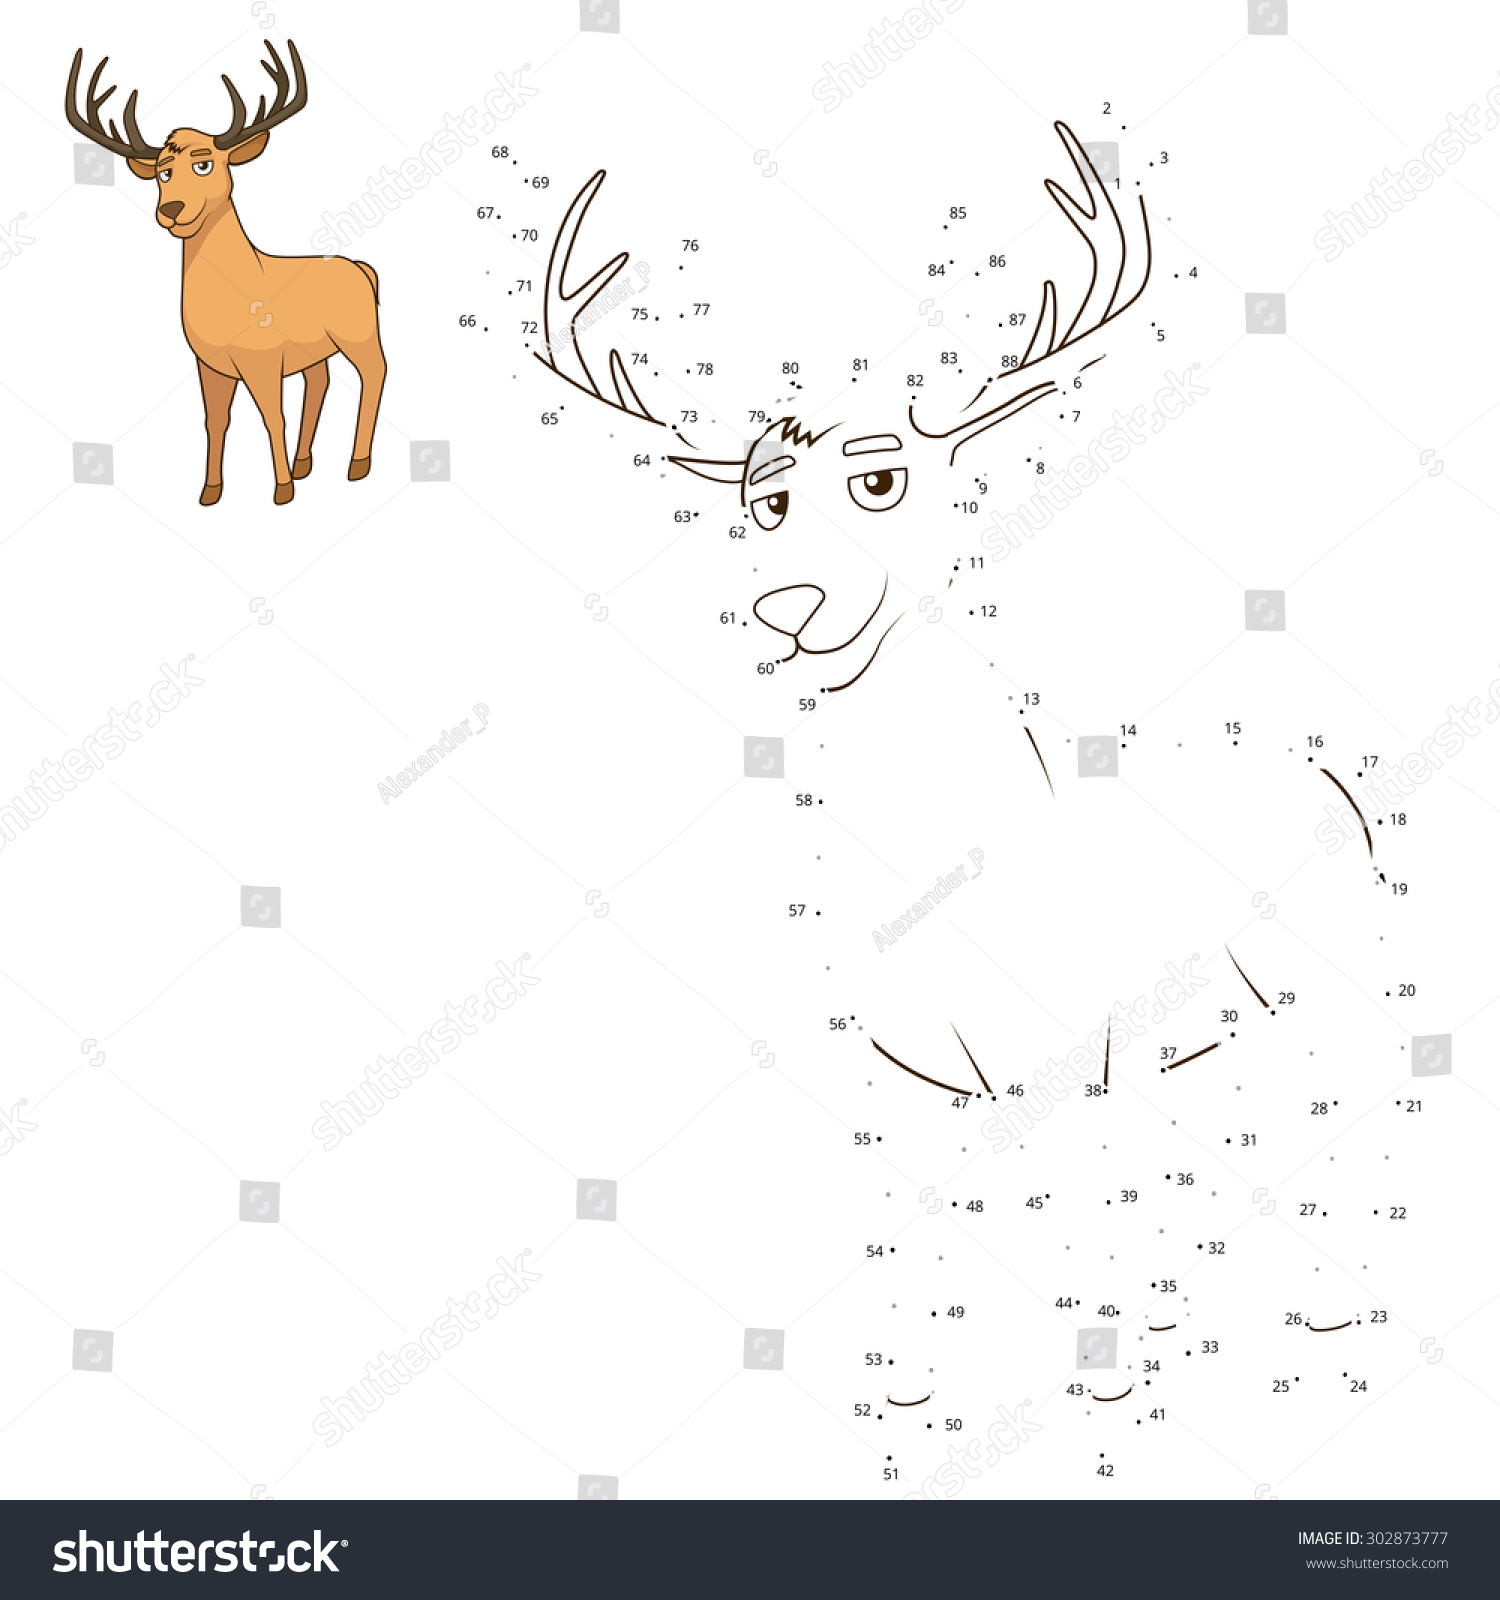 connect dots draw animal educational game stock vector 302873777